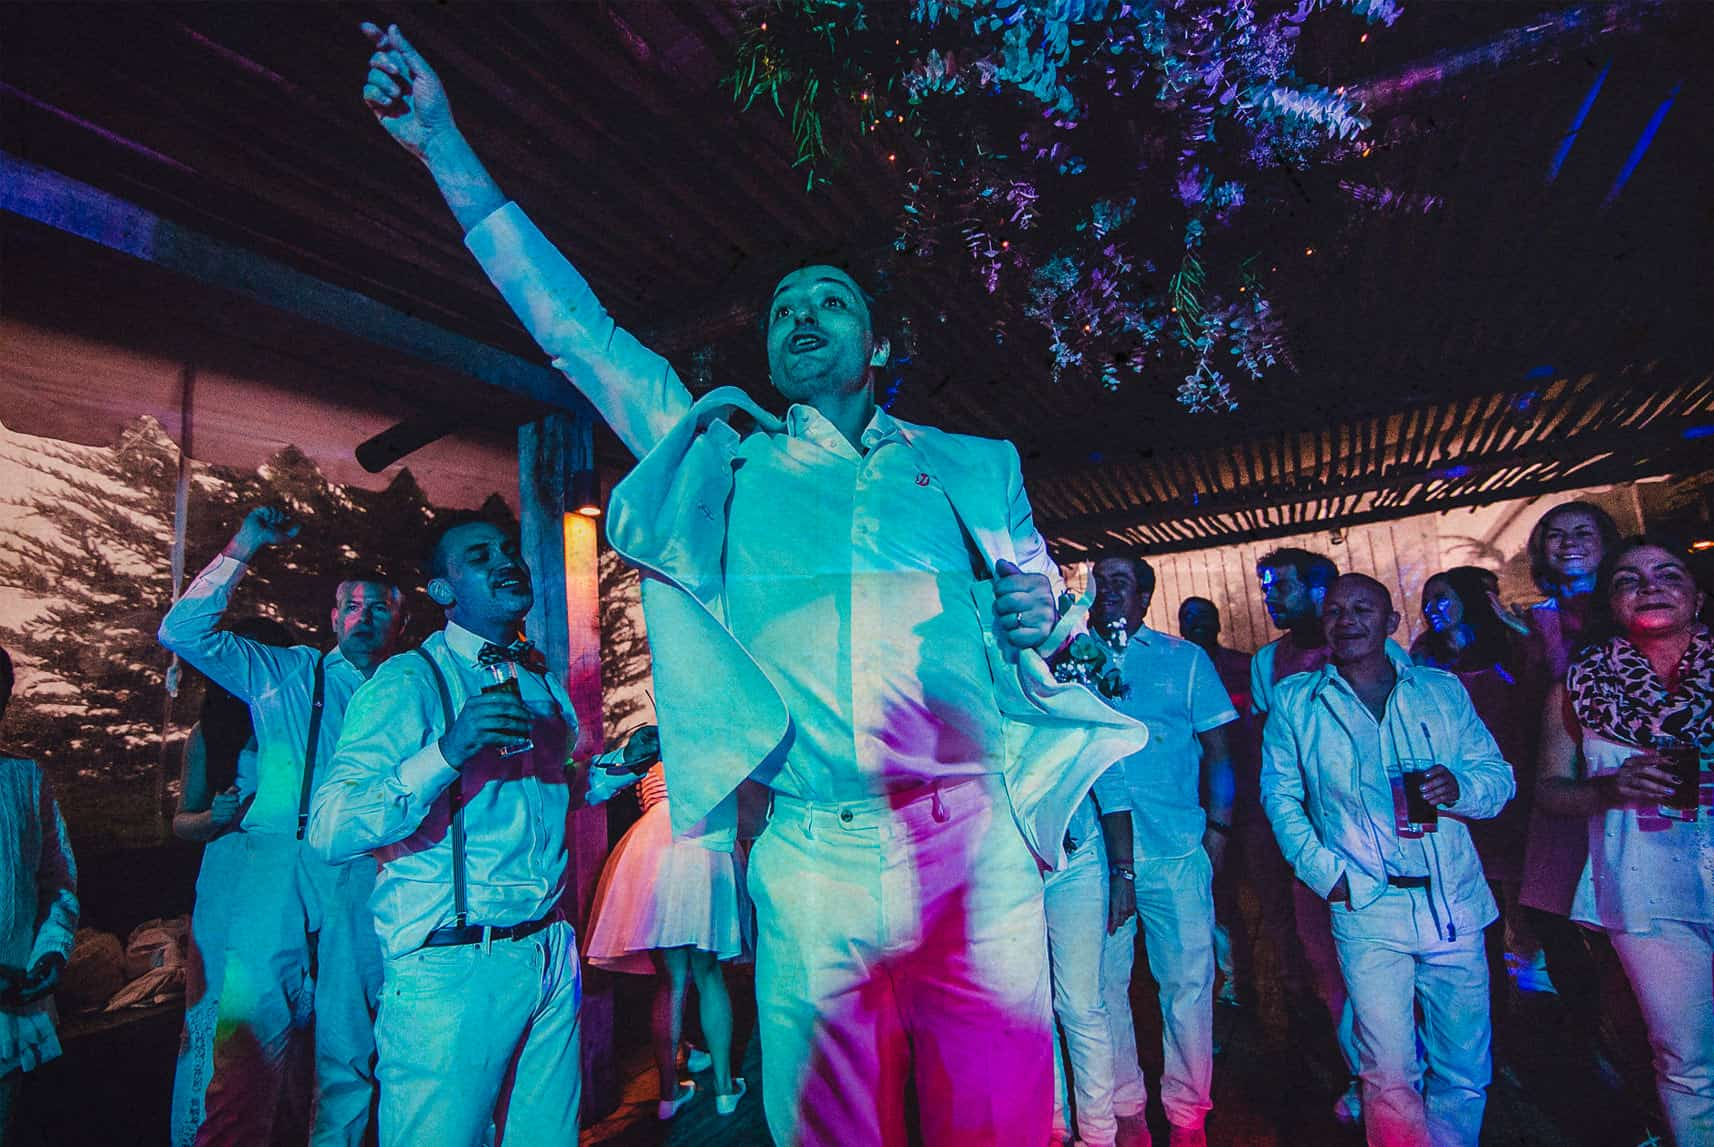 the groom jumping and screaming in the dance floor of the wedding